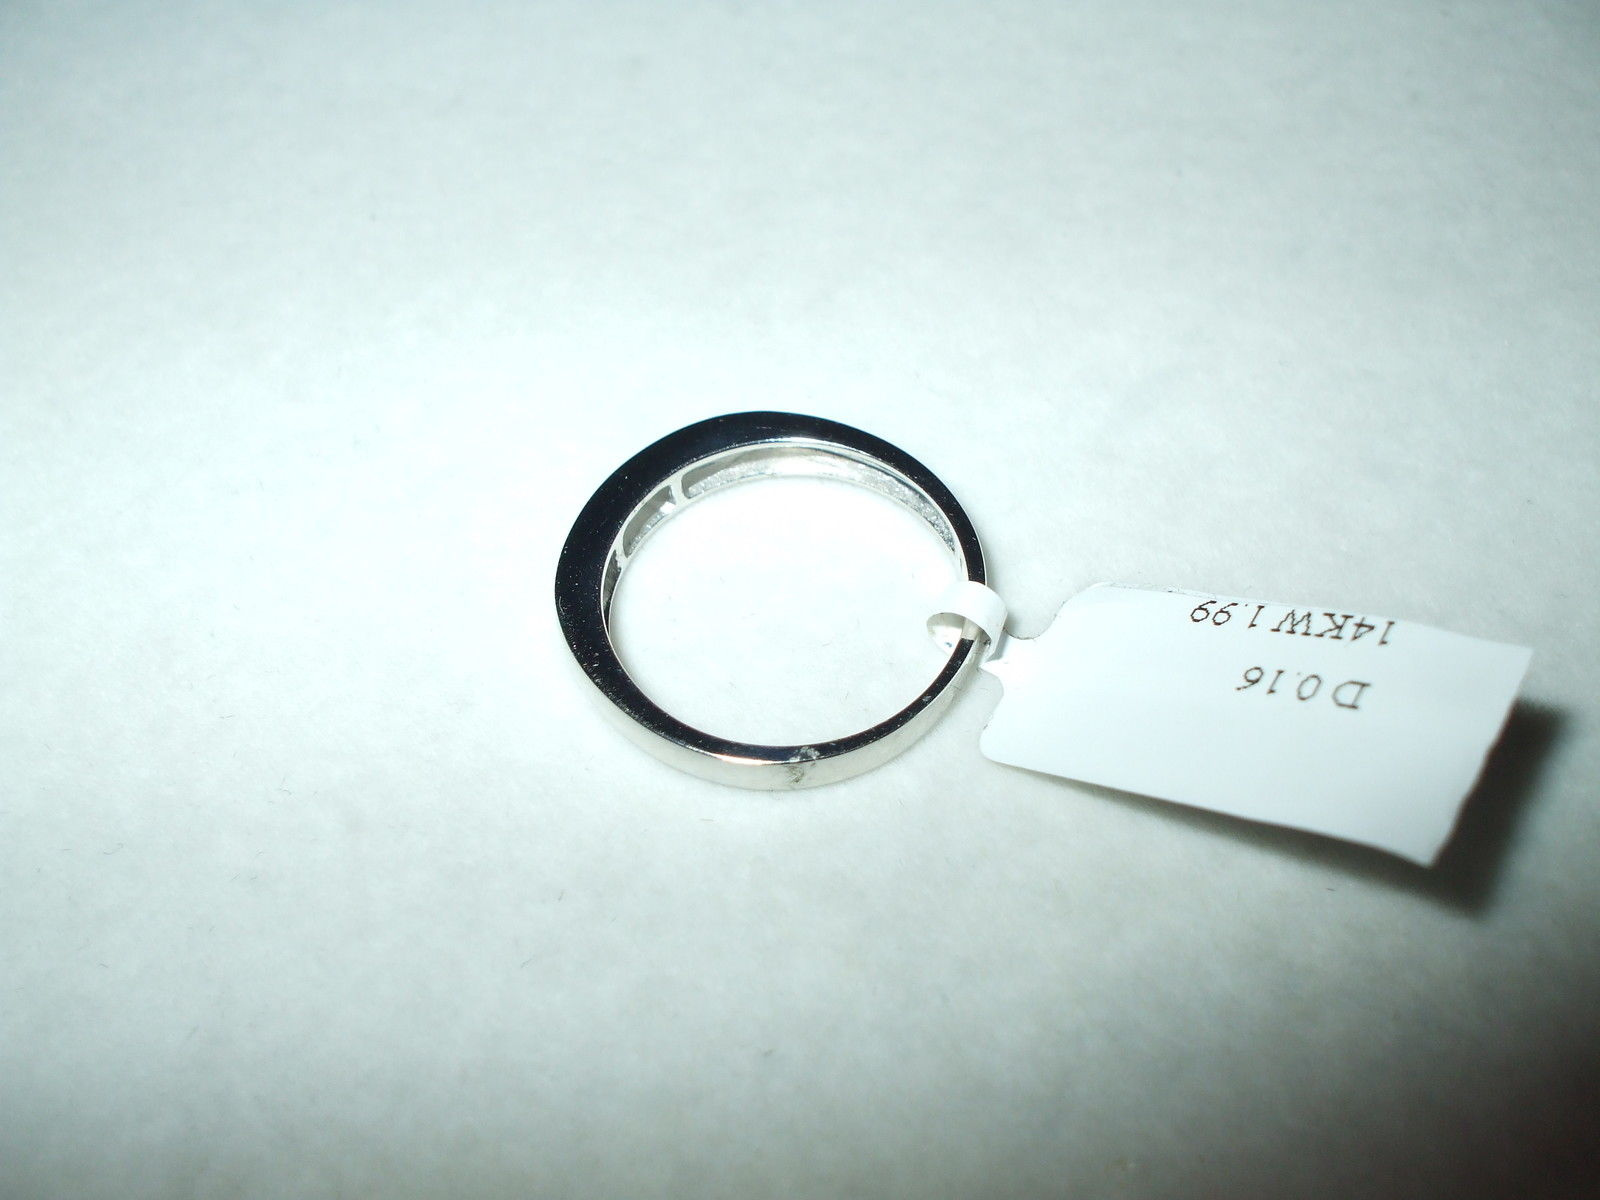 Genuine .16 cttw  Diamond Ring 14K White gold $600